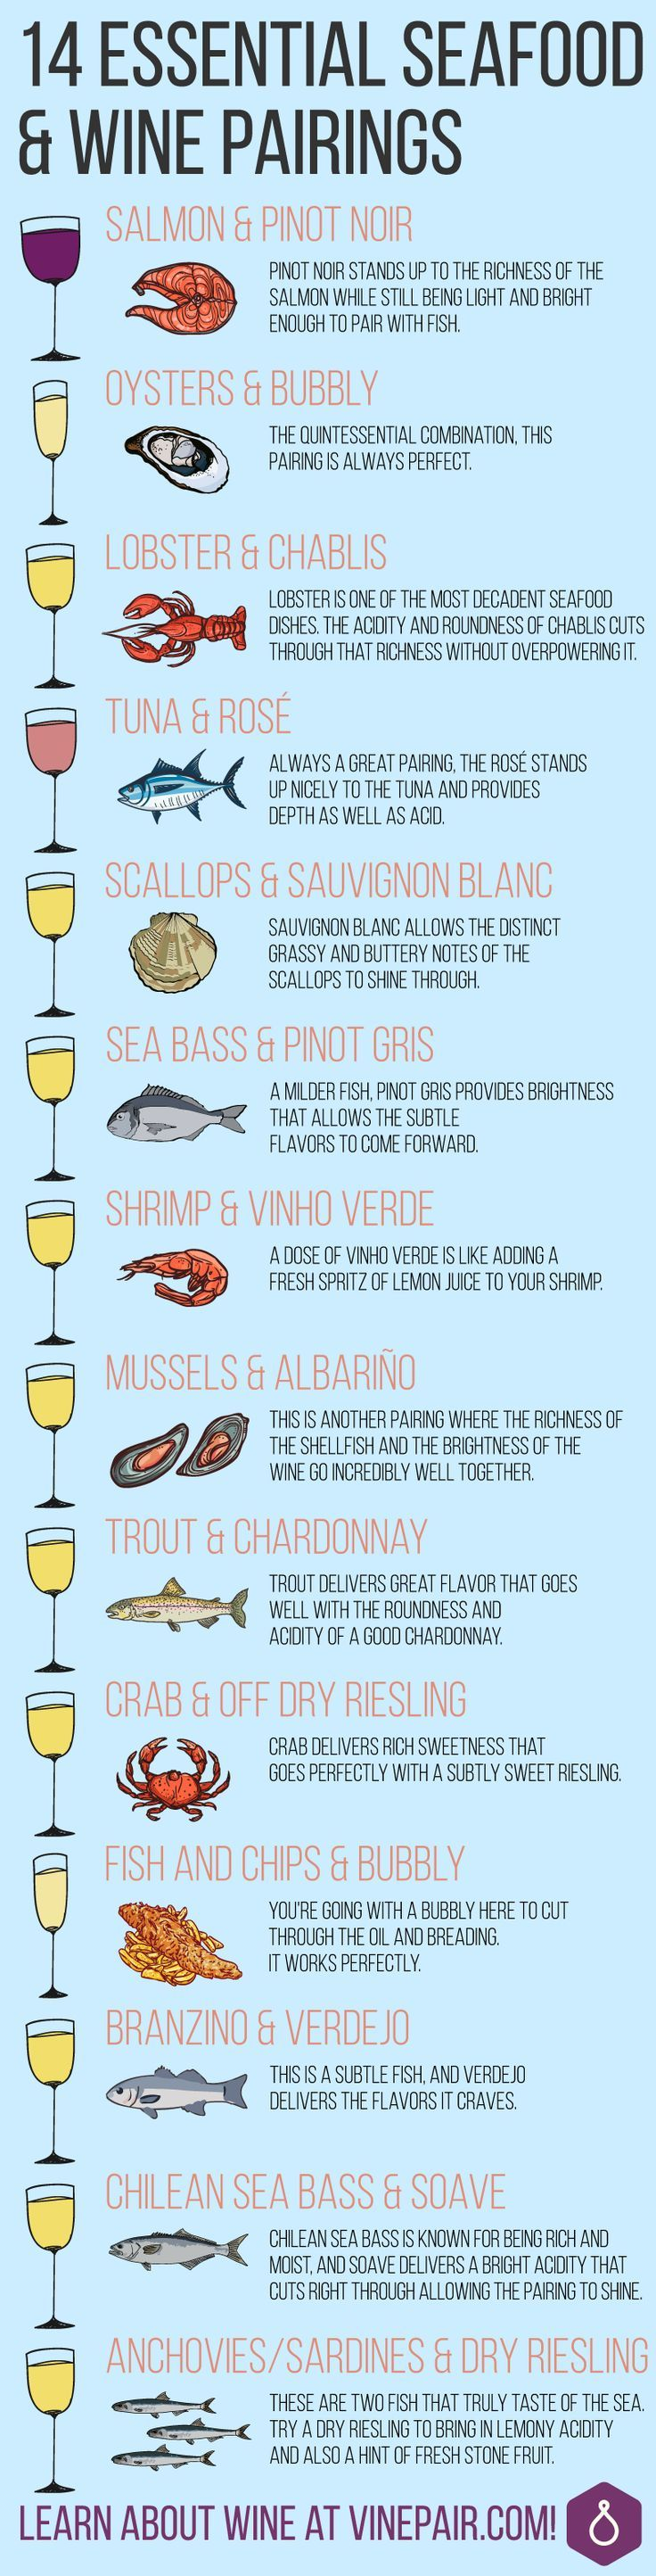 14 Wine Pairings with Fish and Seafood #seafooddishes